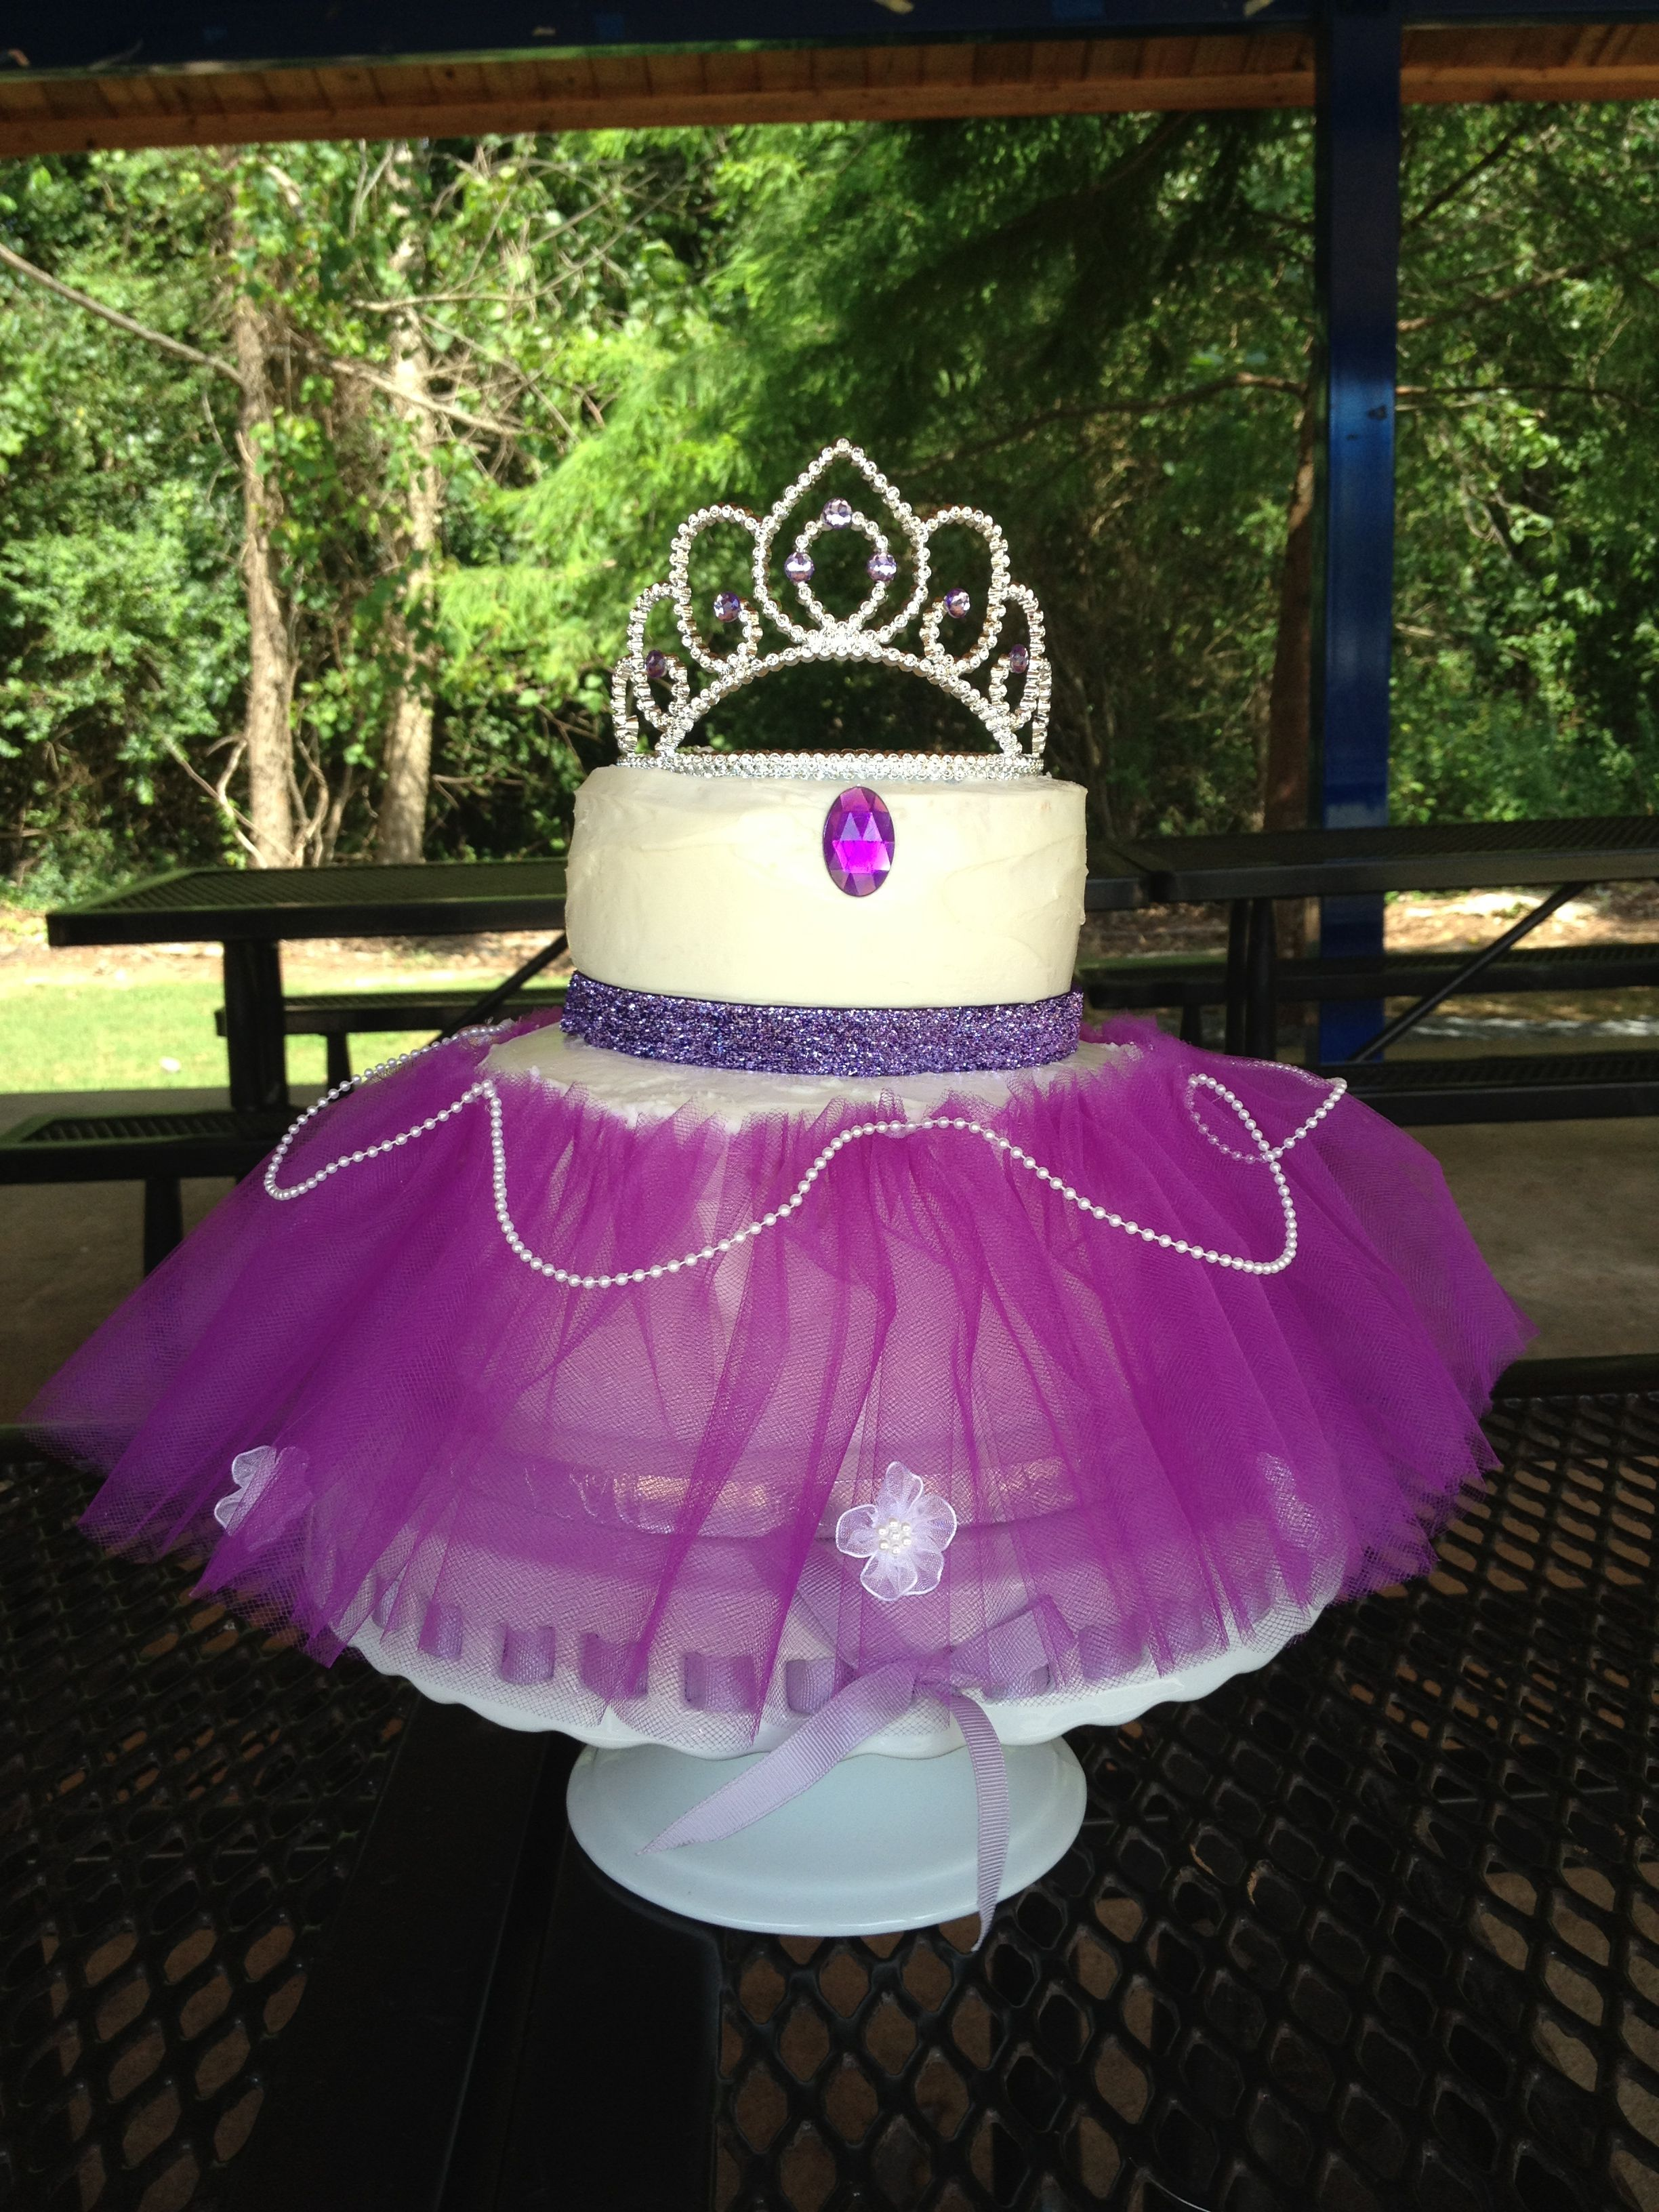 Princess sofia the first cake. I think THIS is my favorite! <3